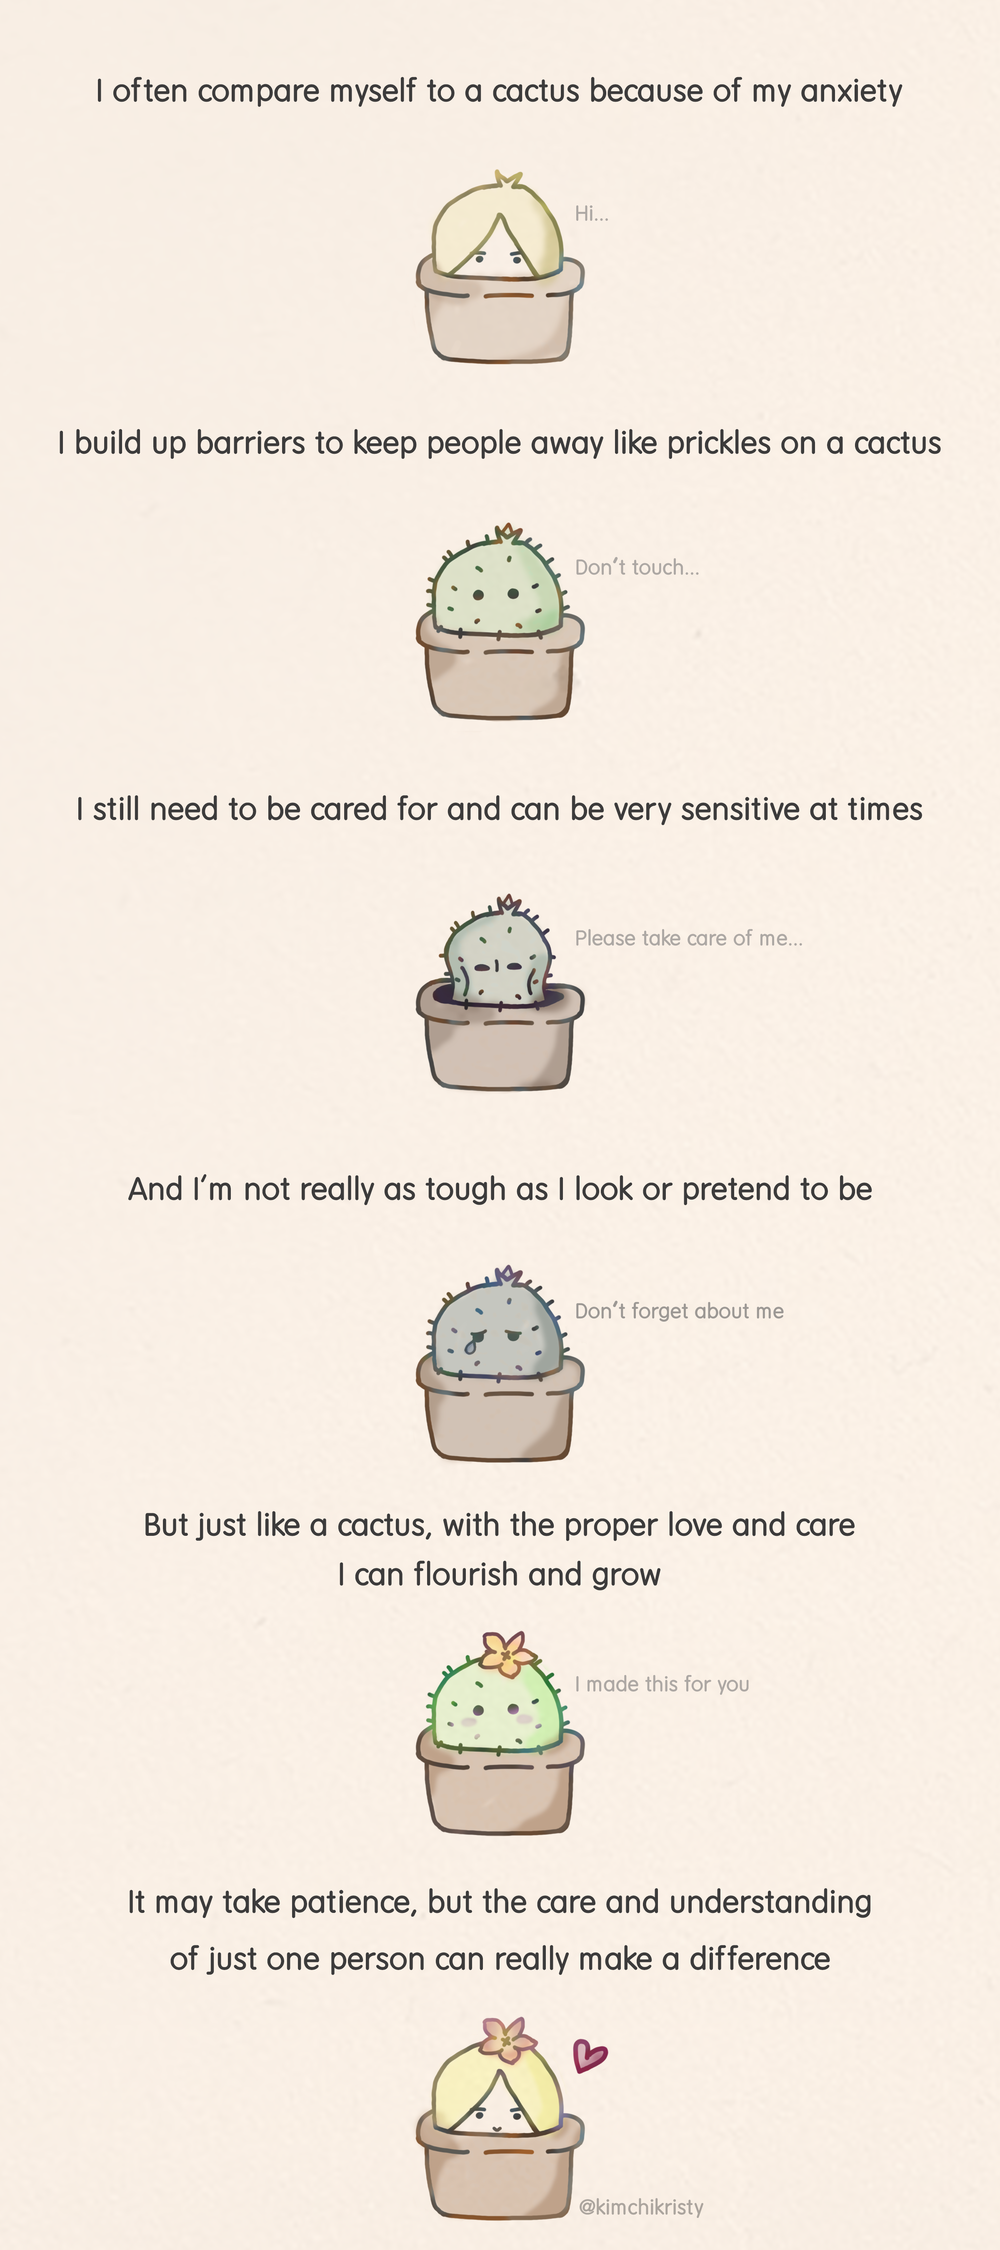 Anxietycactus.png